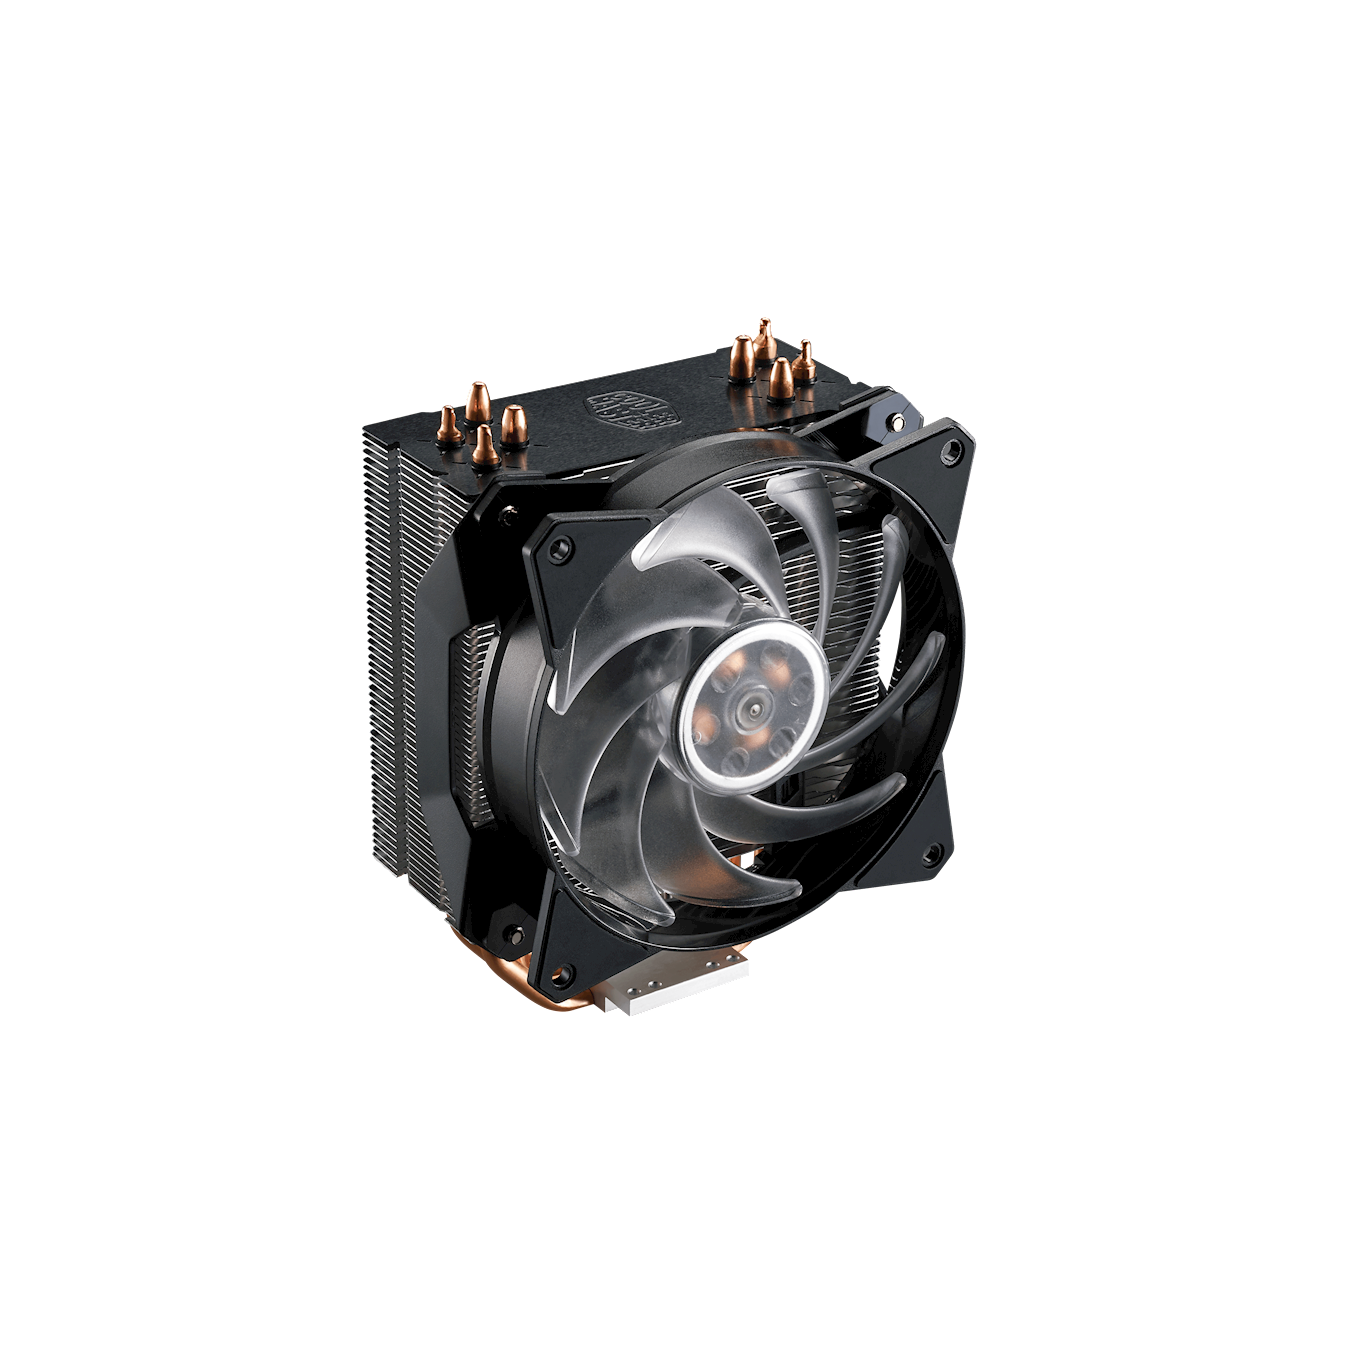 The MasterAir MA410P is the upgraded version of the MasterAir Pro 4